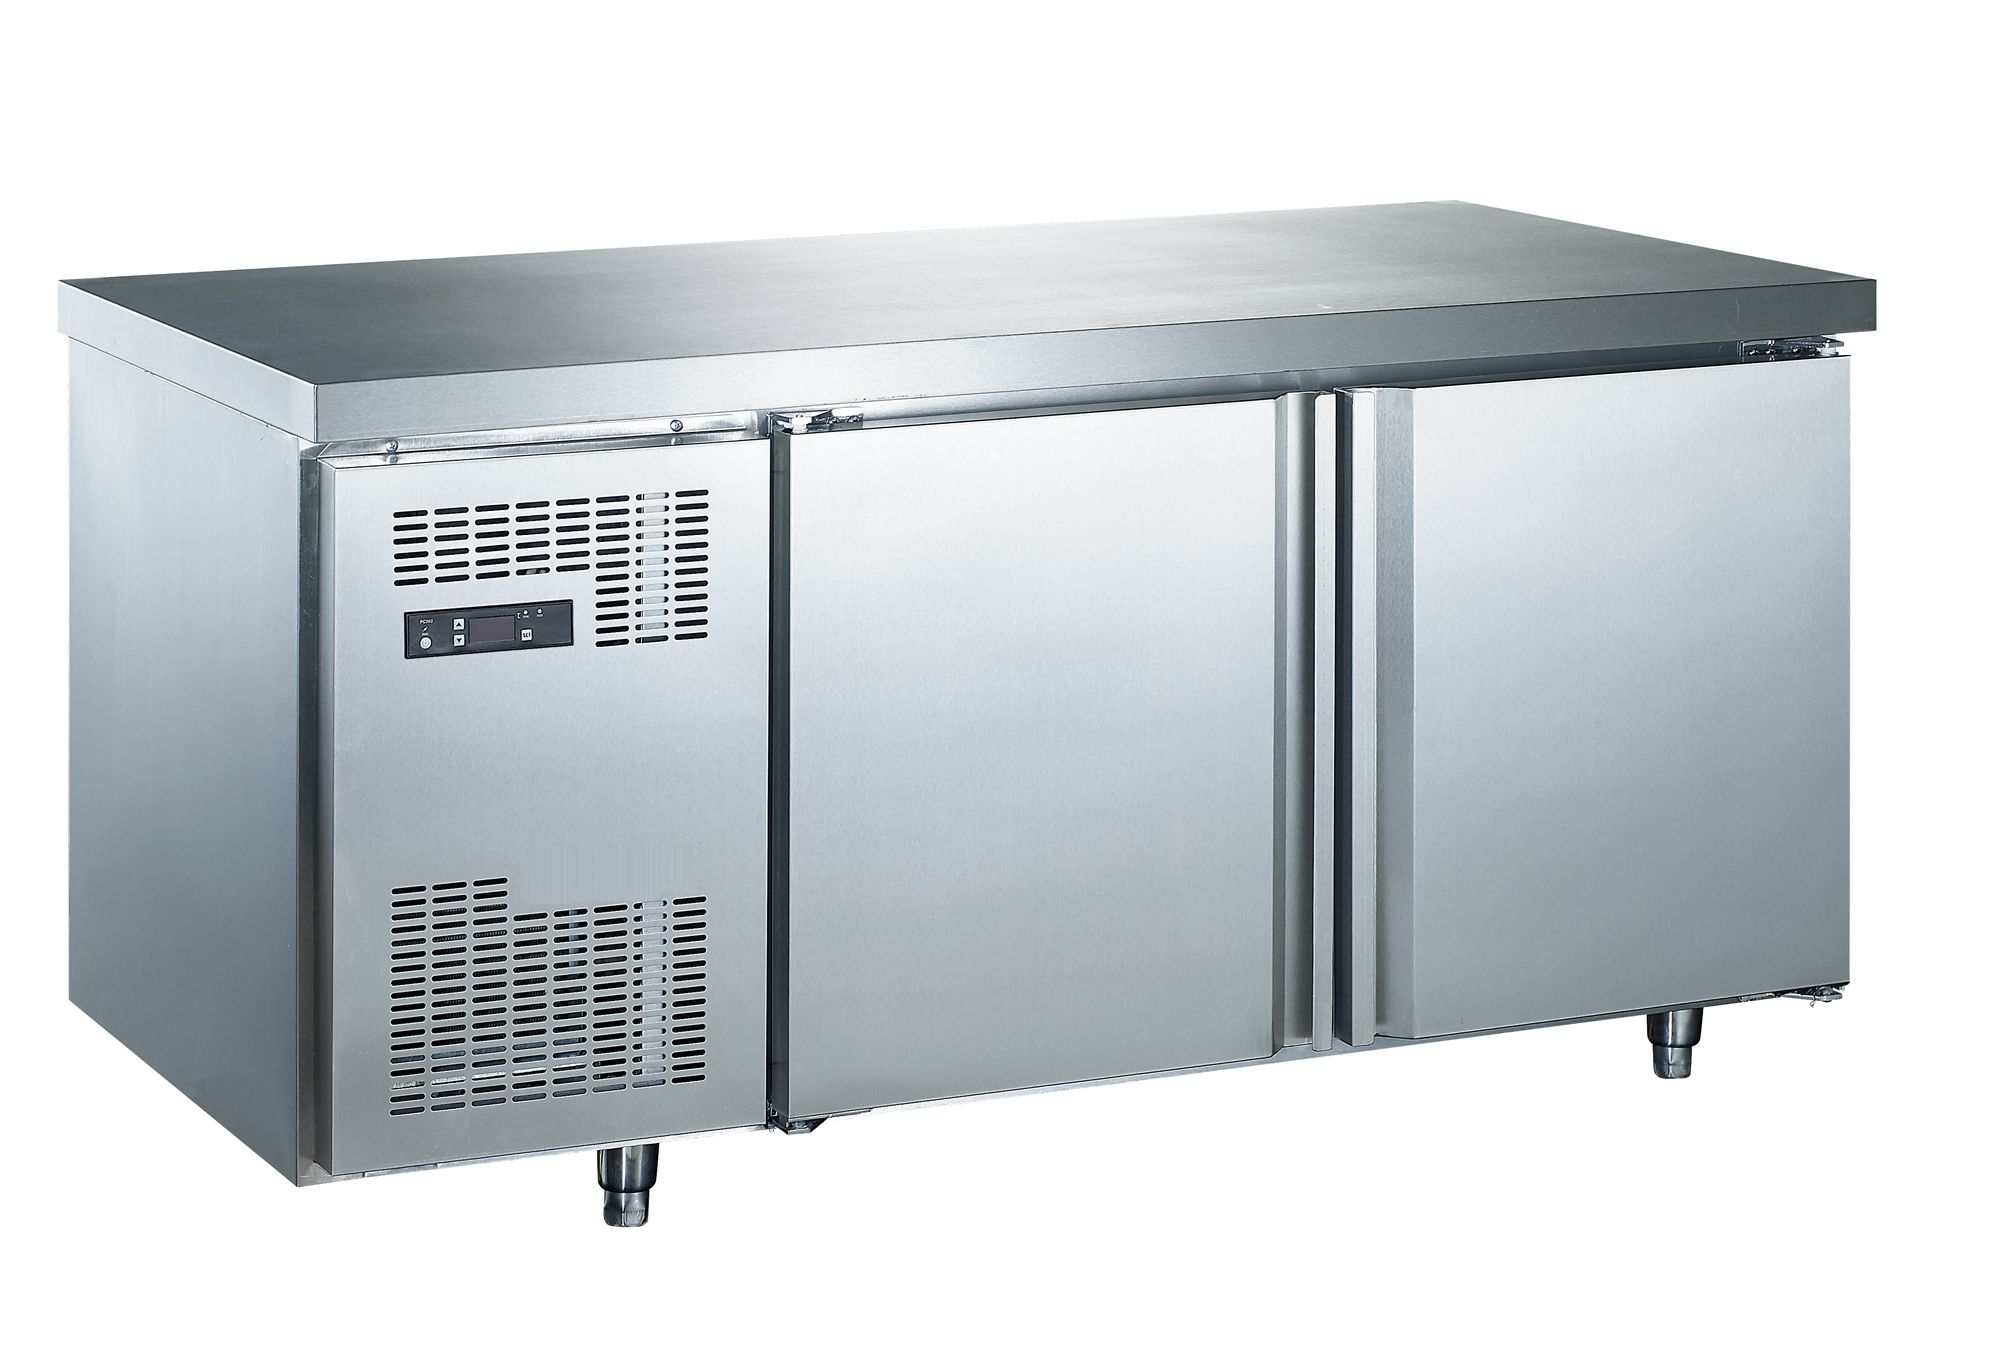 Commercial under counter refrigerator